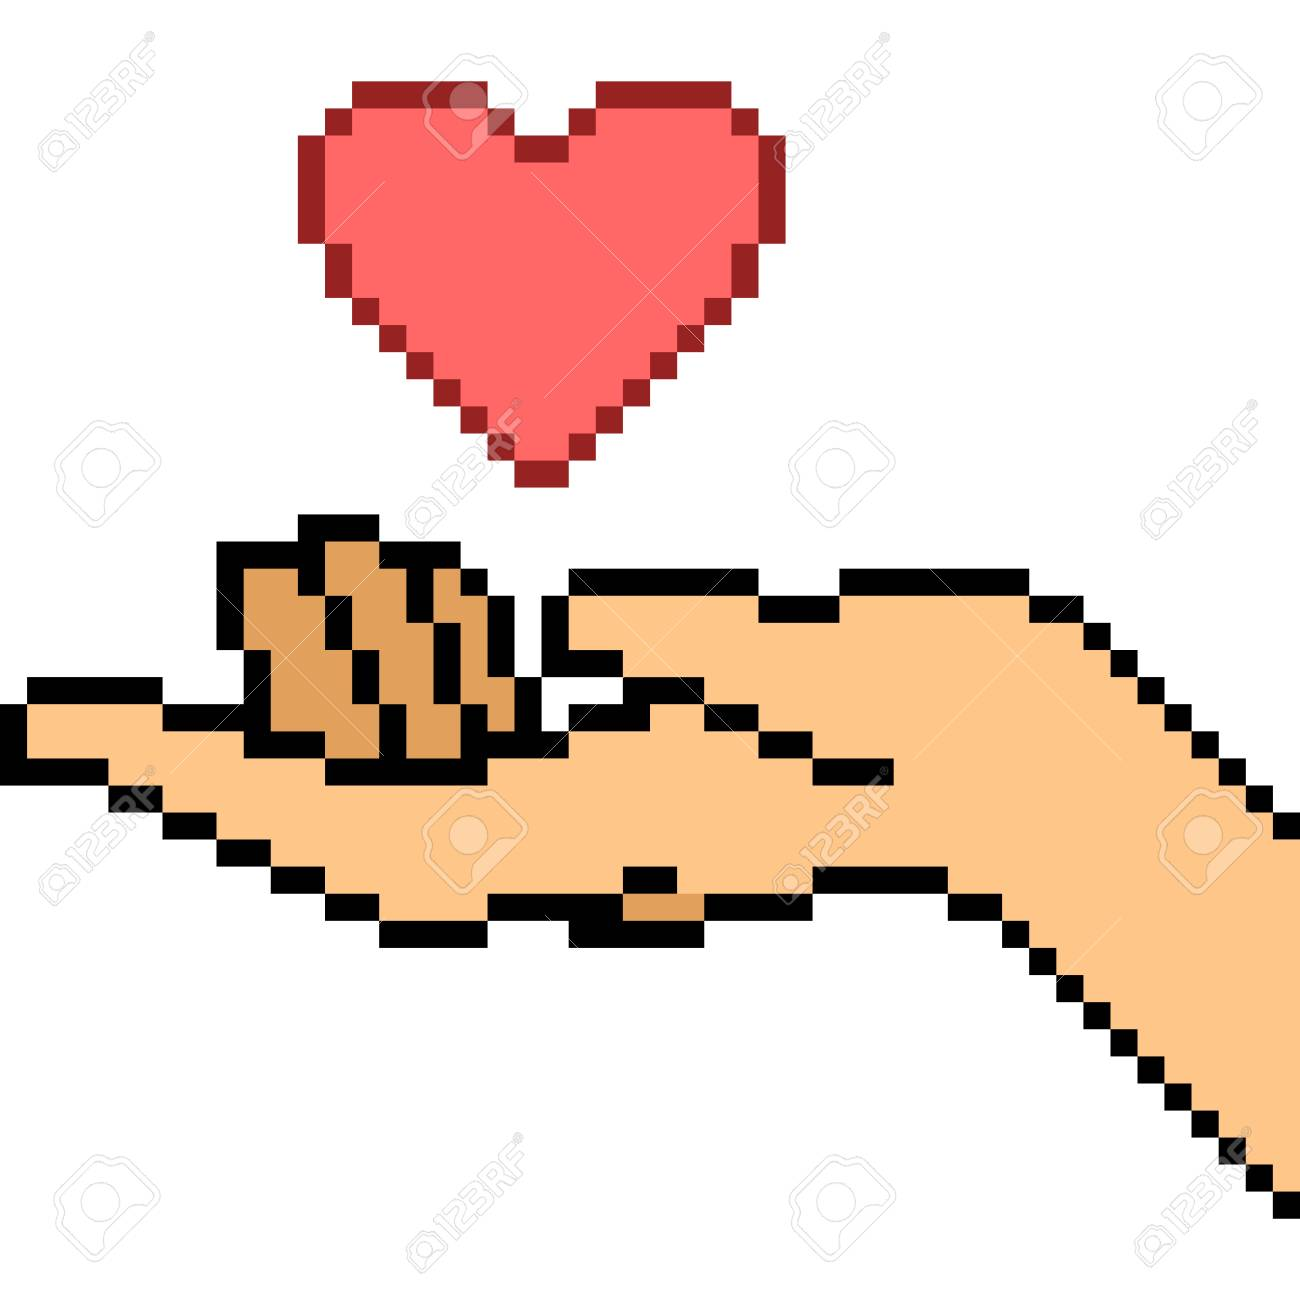 Vector Pixel Art Hand Gesture Love Isolated Royalty Free Cliparts Vectors And Stock Illustration Image 95242831